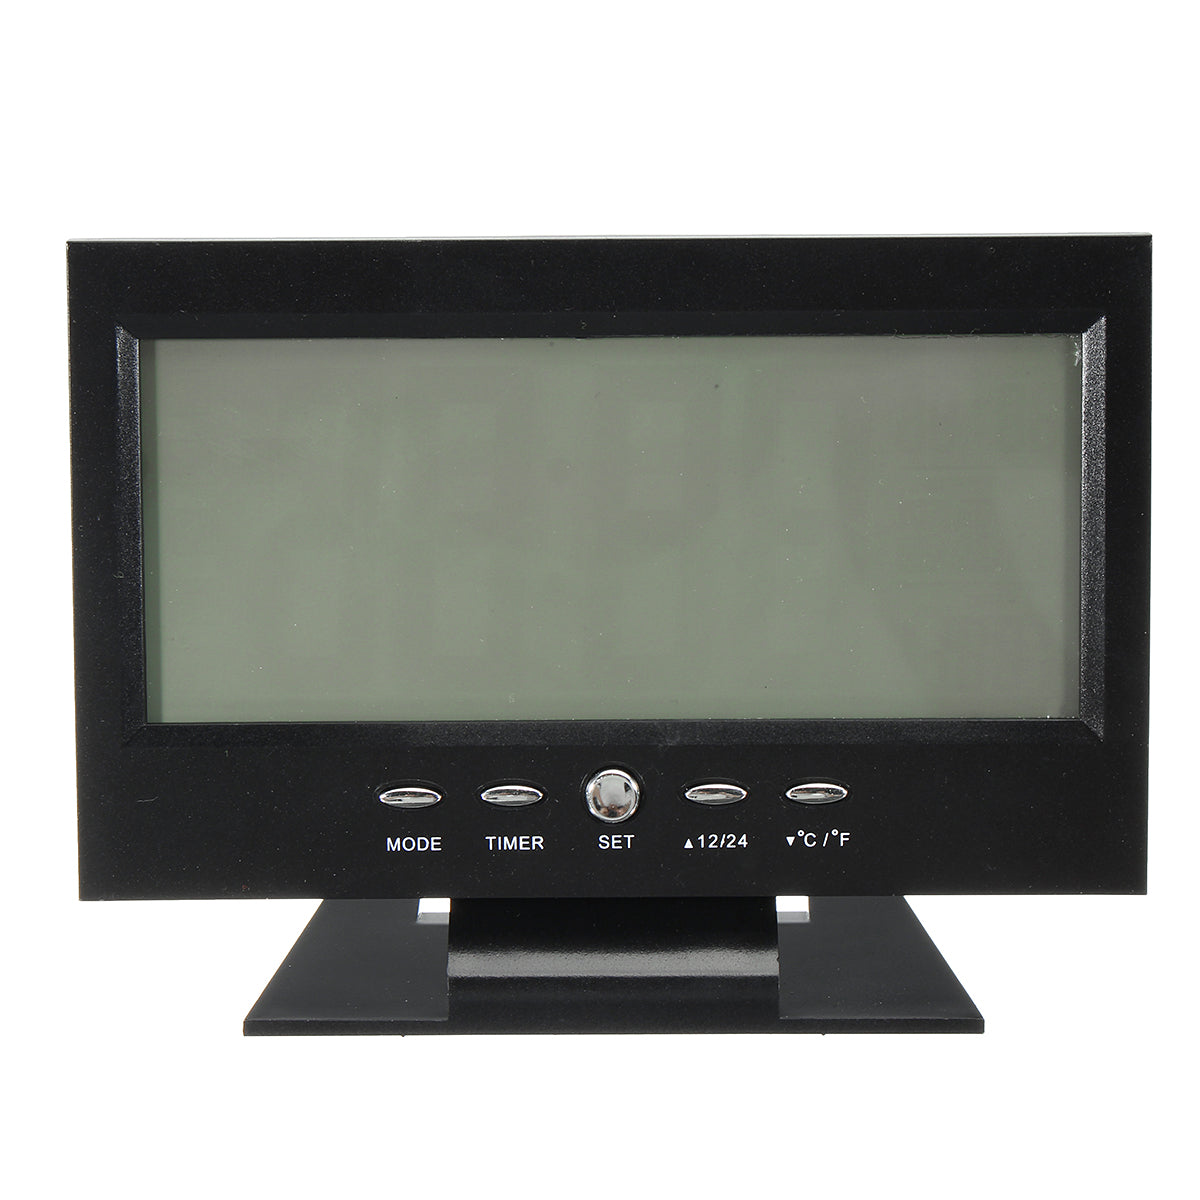 LCD Digital Table Clock + Calendar Temperature Alarm Sound Sensor Light Up Black